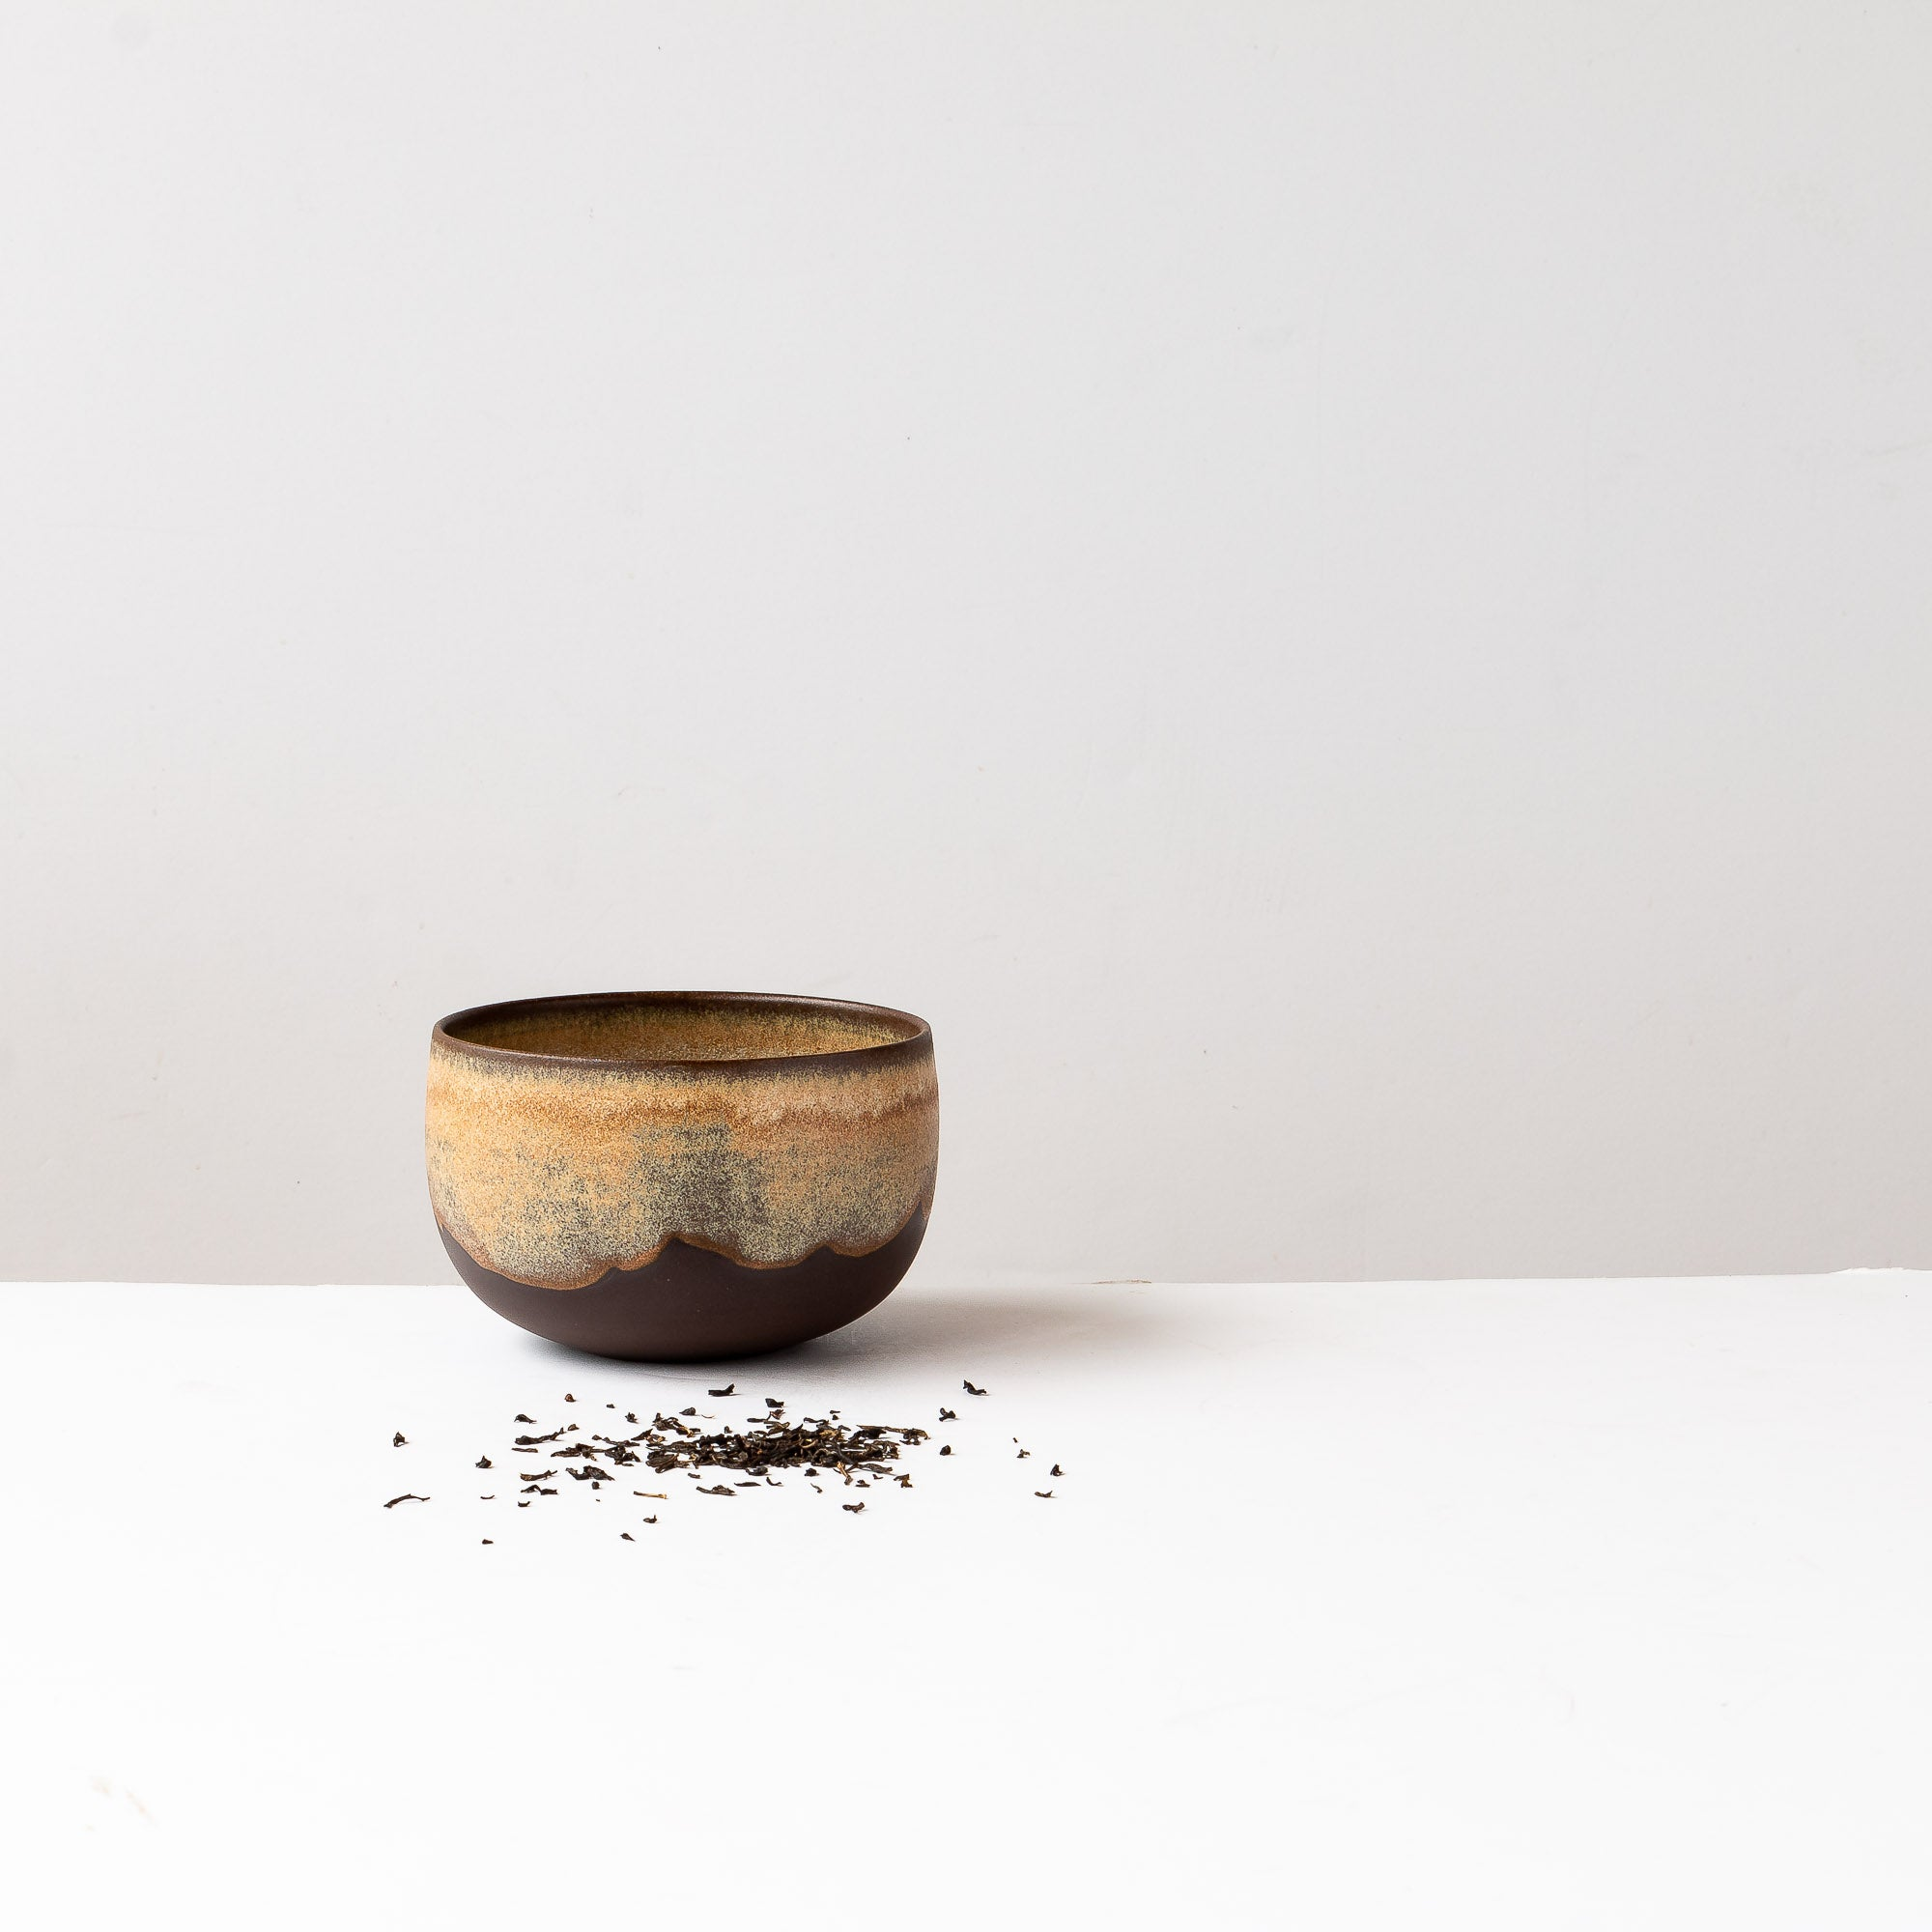 Handmade Coffee Bowl in Black Stoneware - Sold by Chic & Basta